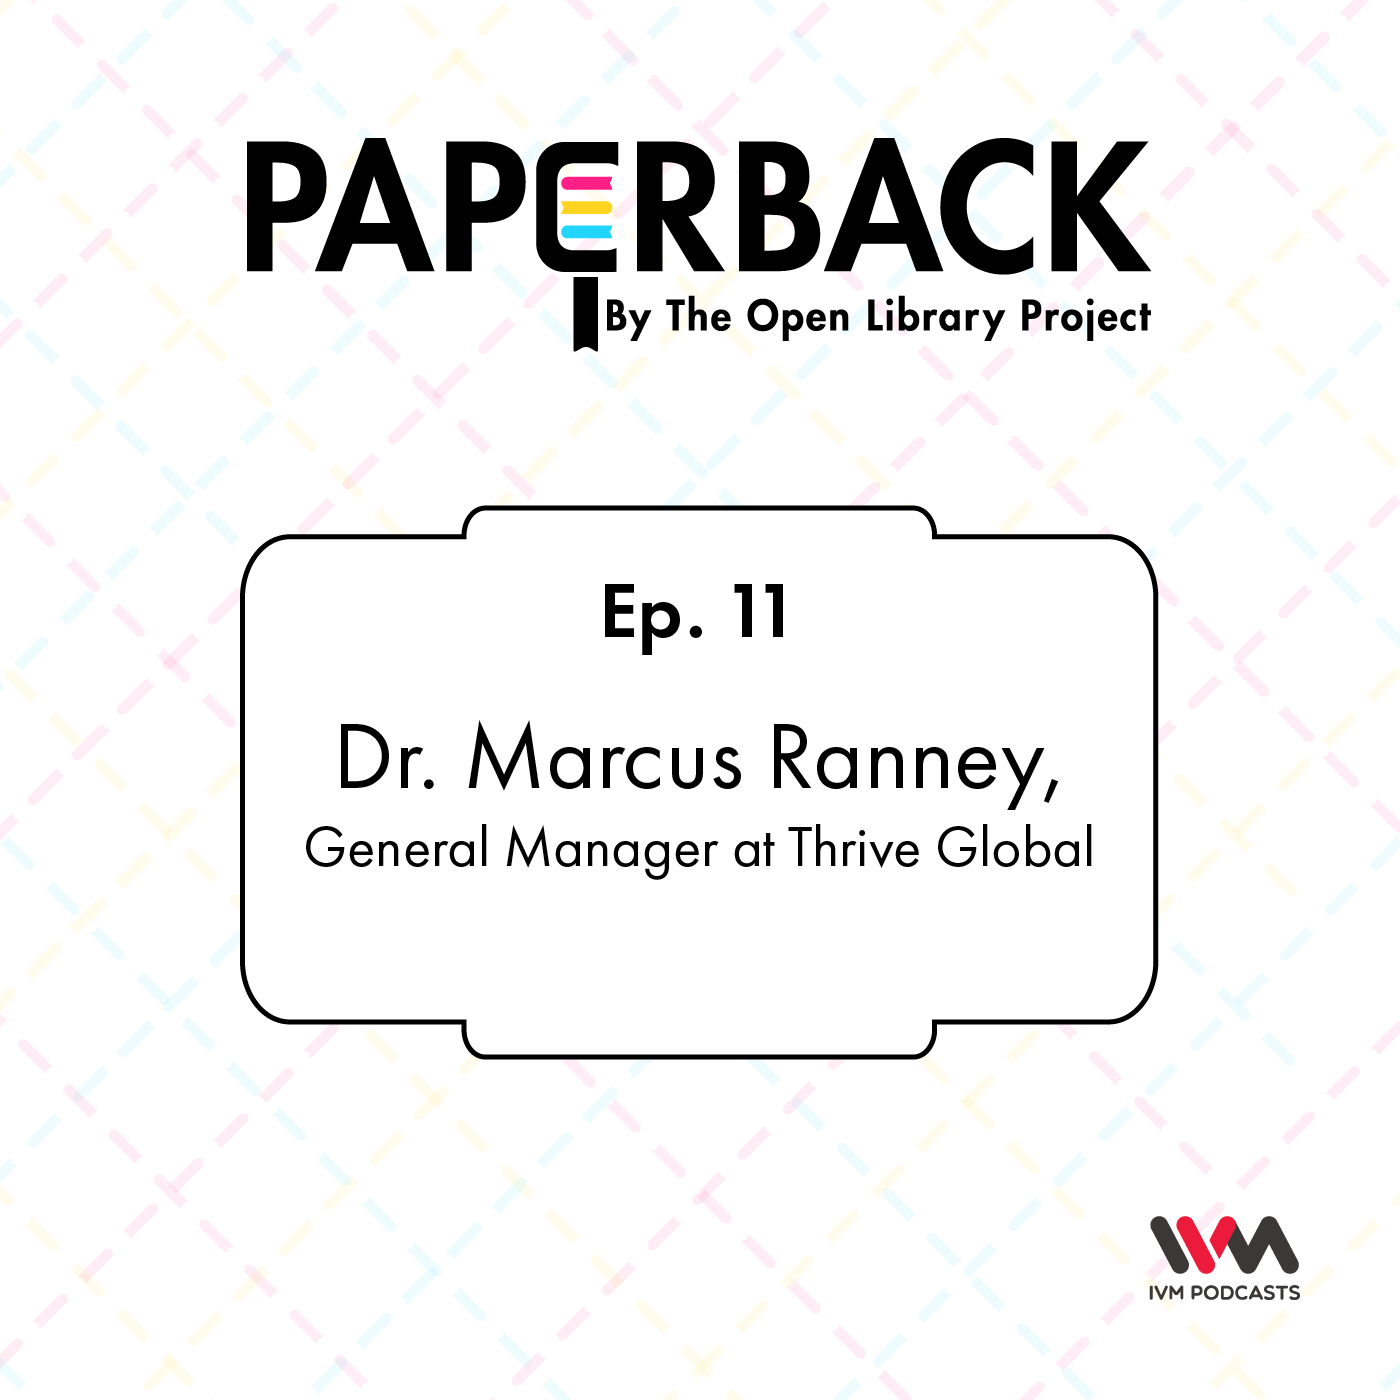 Ep. 11: Dr. Marcus Ranney